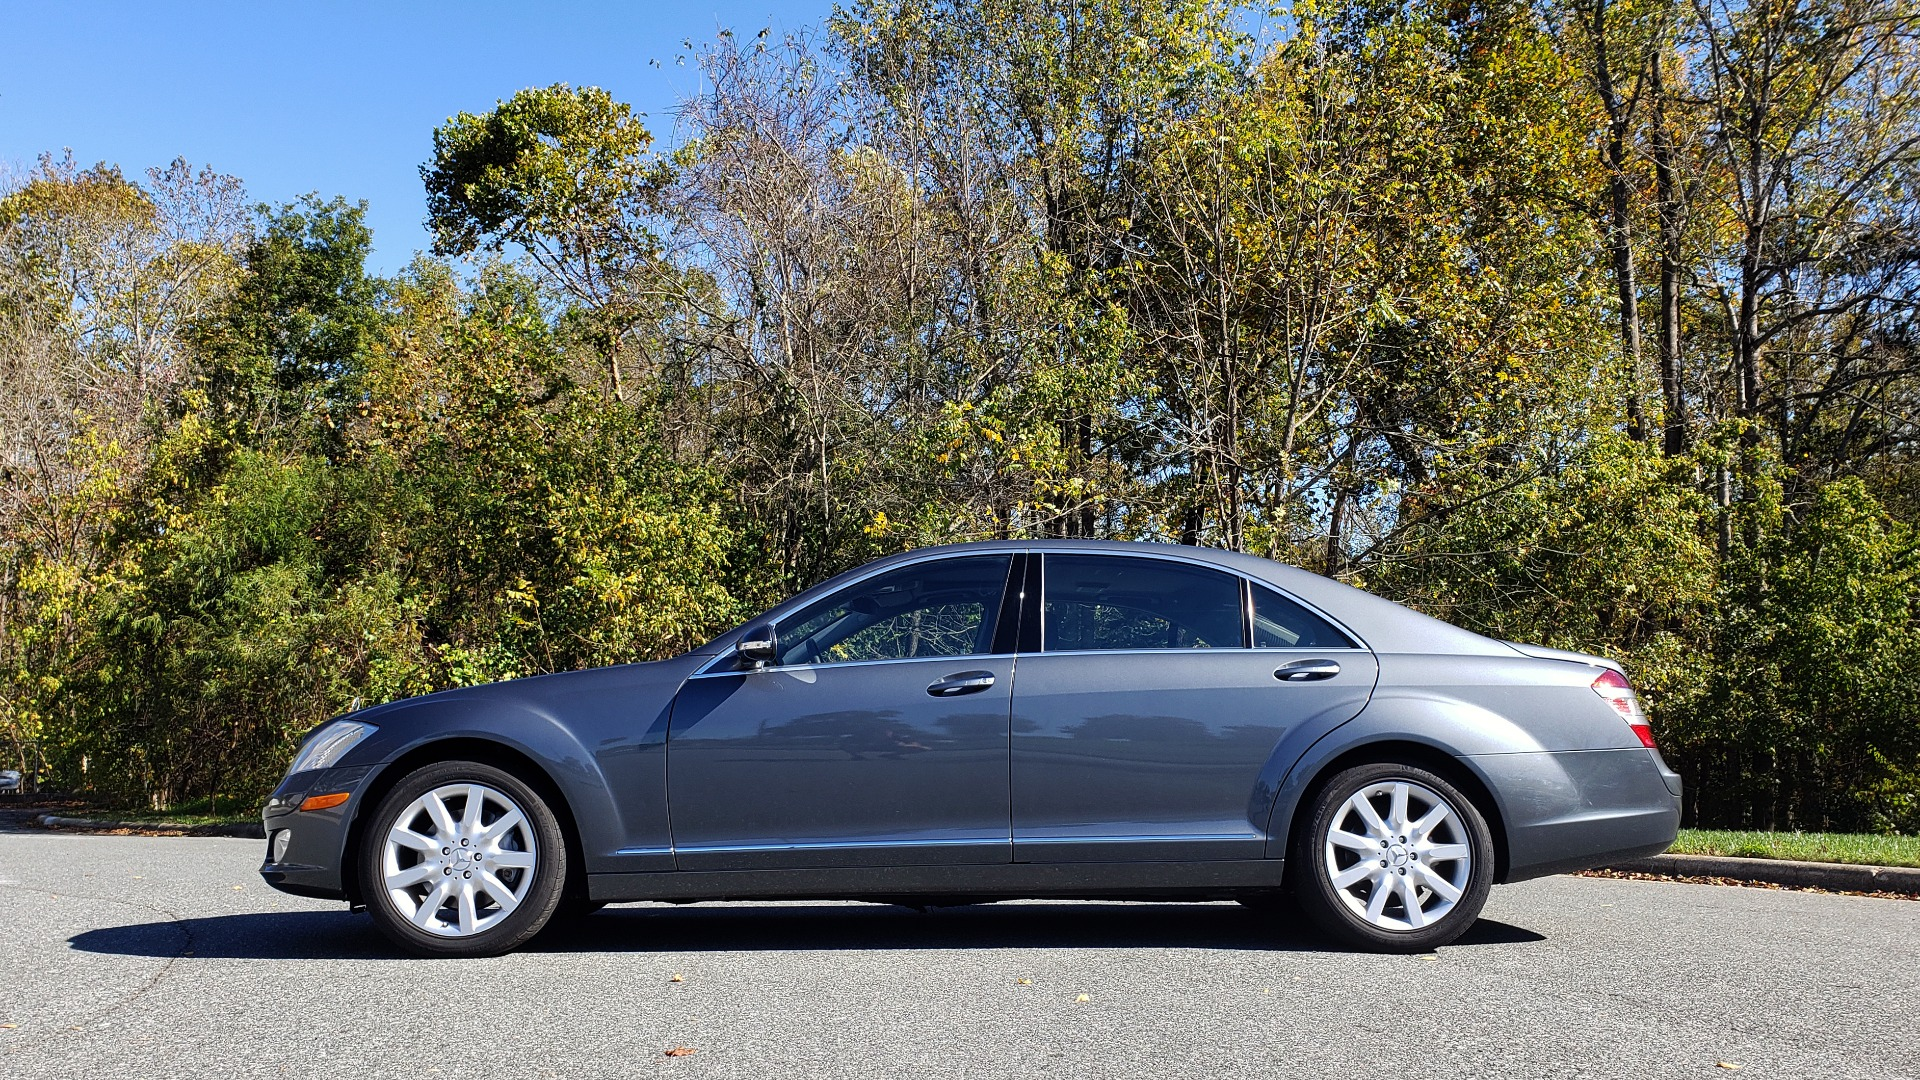 Used 2007 Mercedes-Benz S-CLASS S550 5.5L V8 / LWB / PREM 2 / NAV / SUNROOF / KEYLESS-GO for sale Sold at Formula Imports in Charlotte NC 28227 3